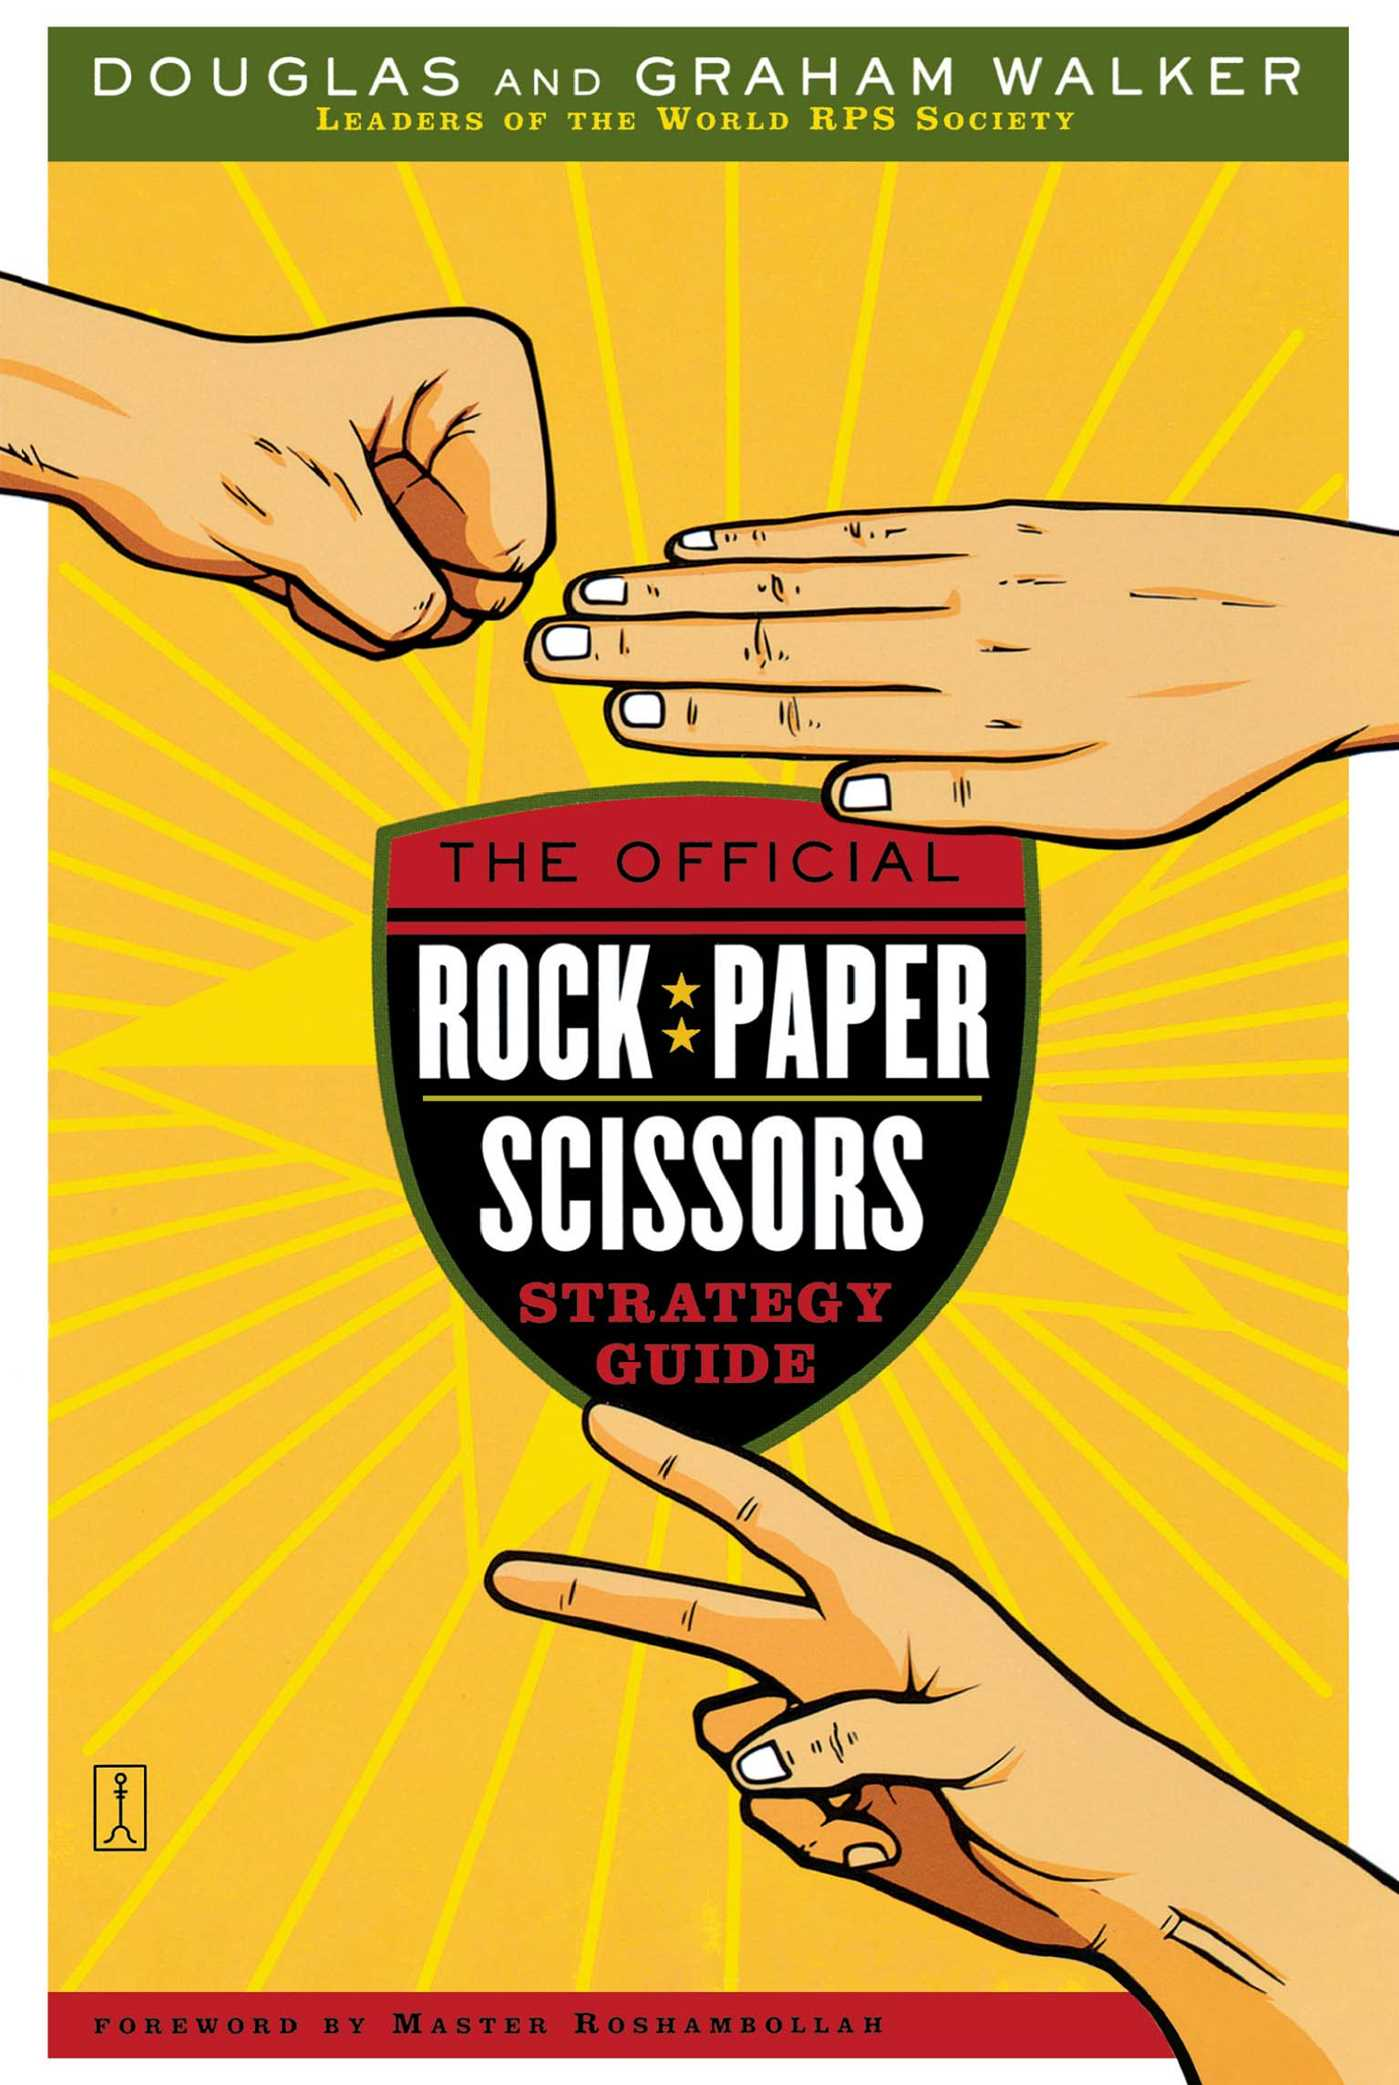 rock paper scissors strategy An evolutionary game with no ess is rock-scissors-paper if the game is played only with the pure rock, paper and scissors strategies the evolutionary game is.